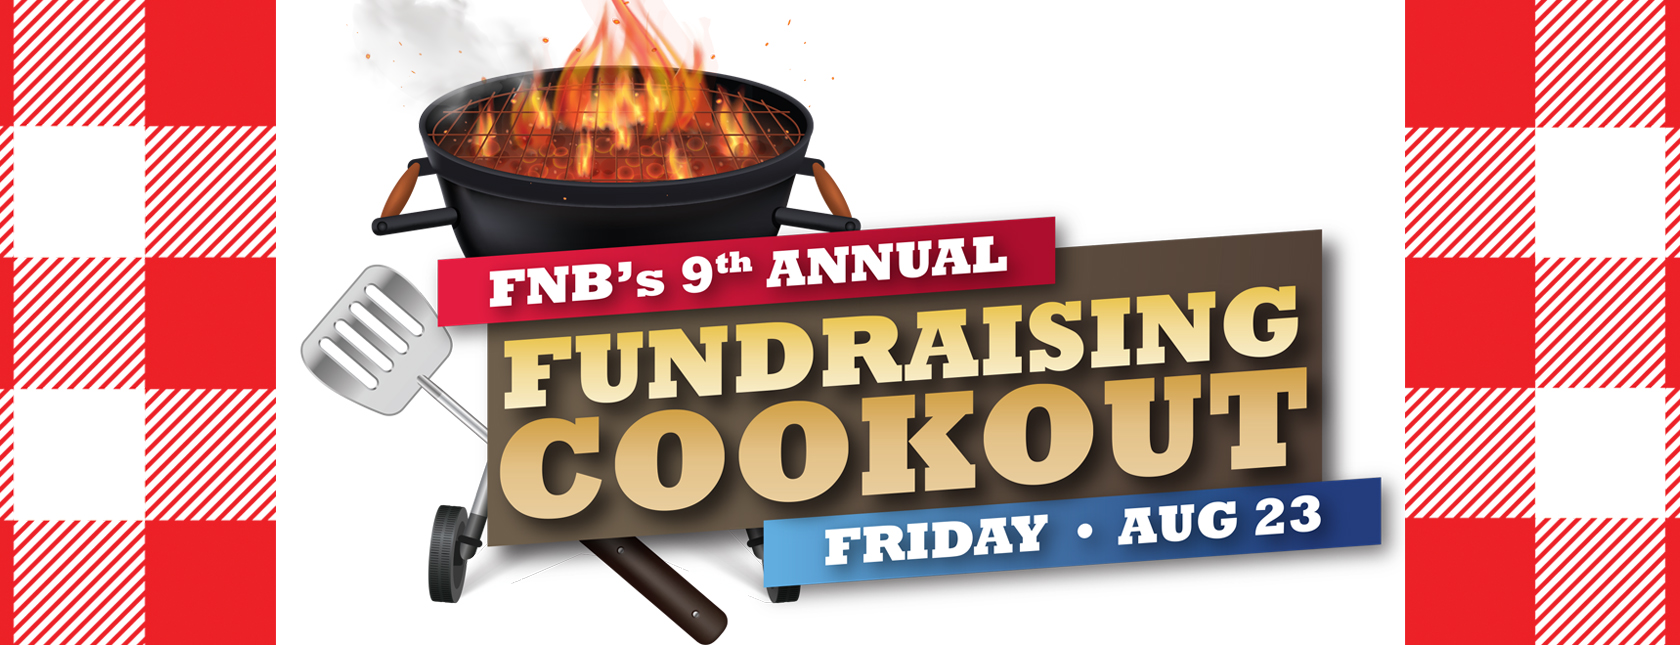 Fundraising Cookout to Benefit Feeding America and Child Advocacy